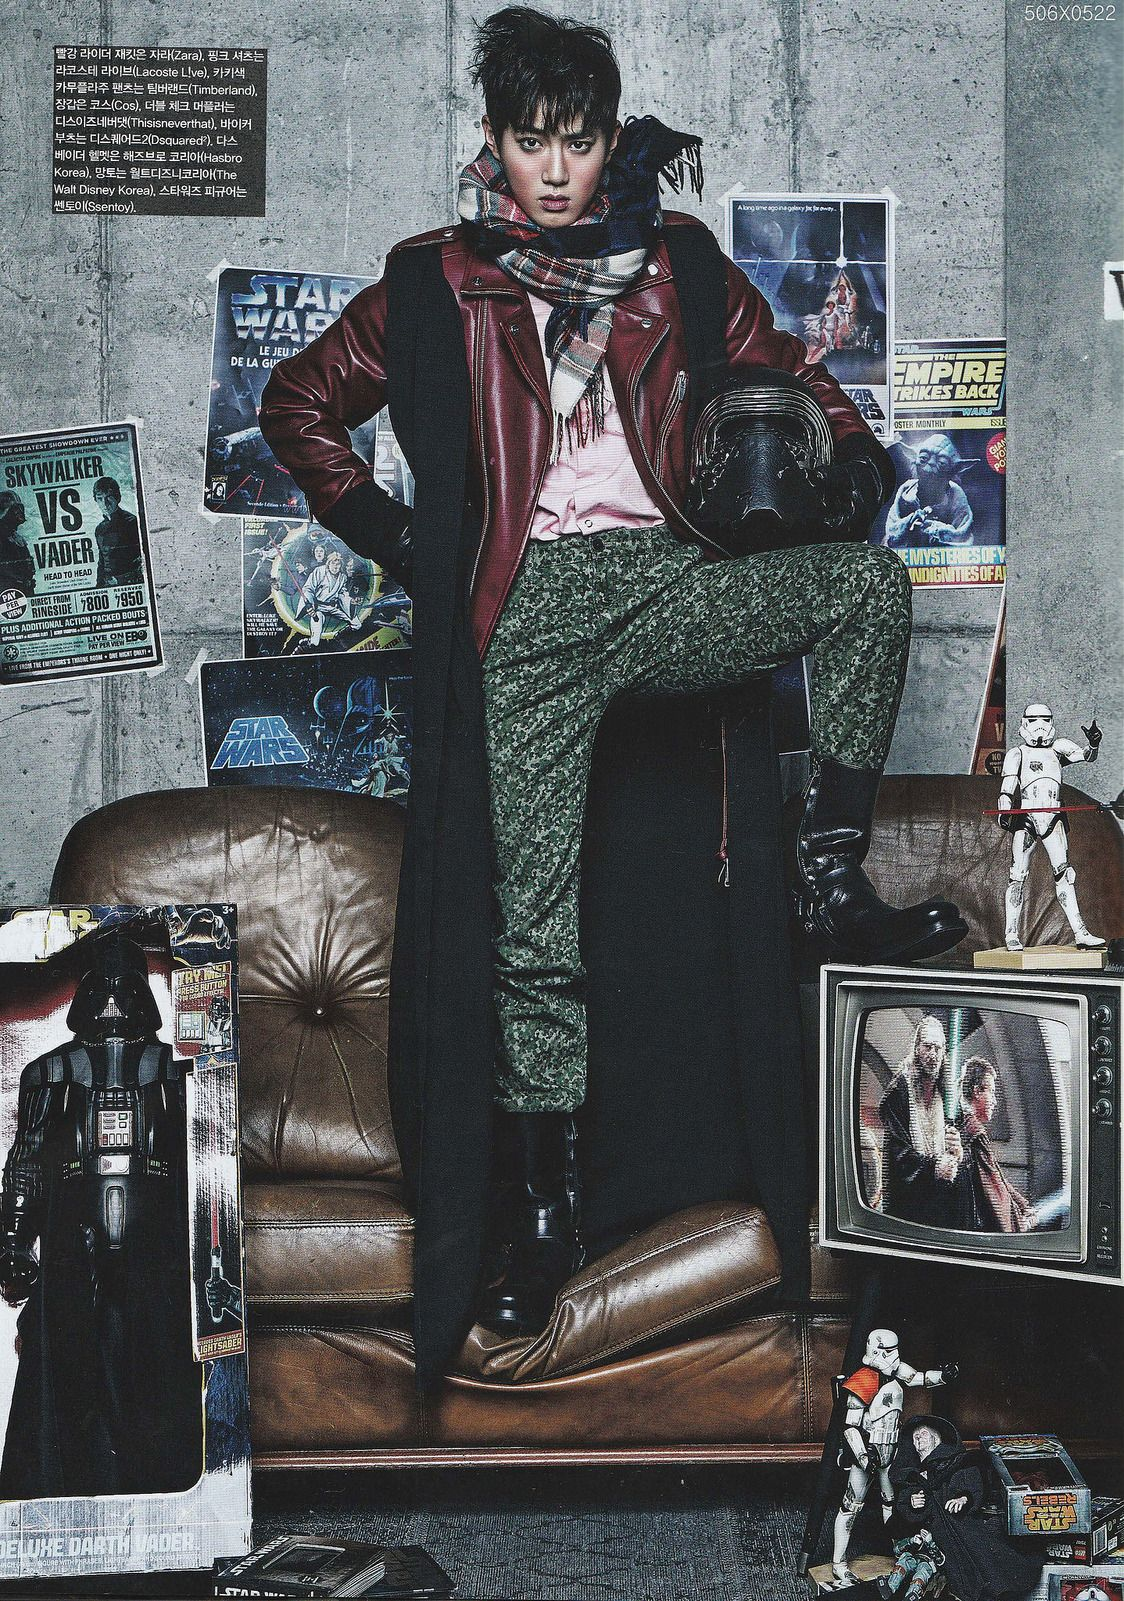 More pictures from the Exo+Star Wars photoshoot - OMONA THEY DIDN'T! Endless charms, endless possibilities ♥